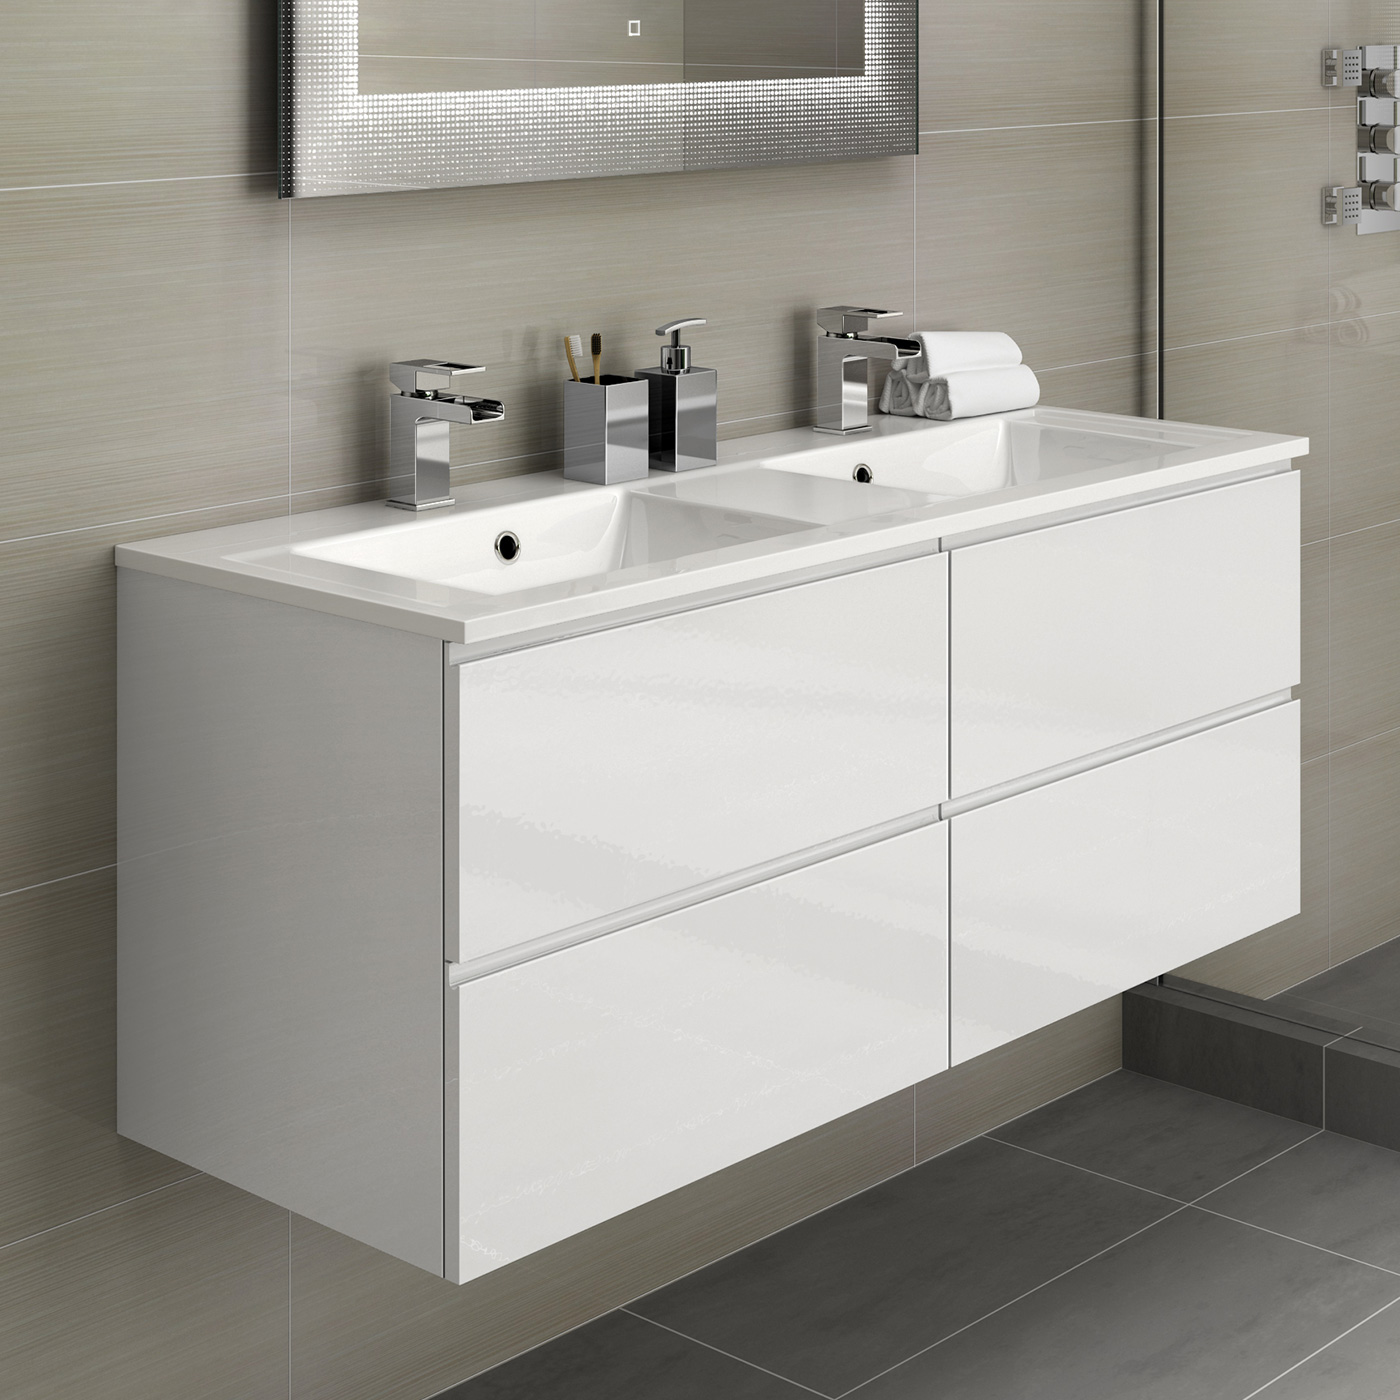 1200mm Vanity Units White Double Basin Bathroom Vanity Unit Sink Storage